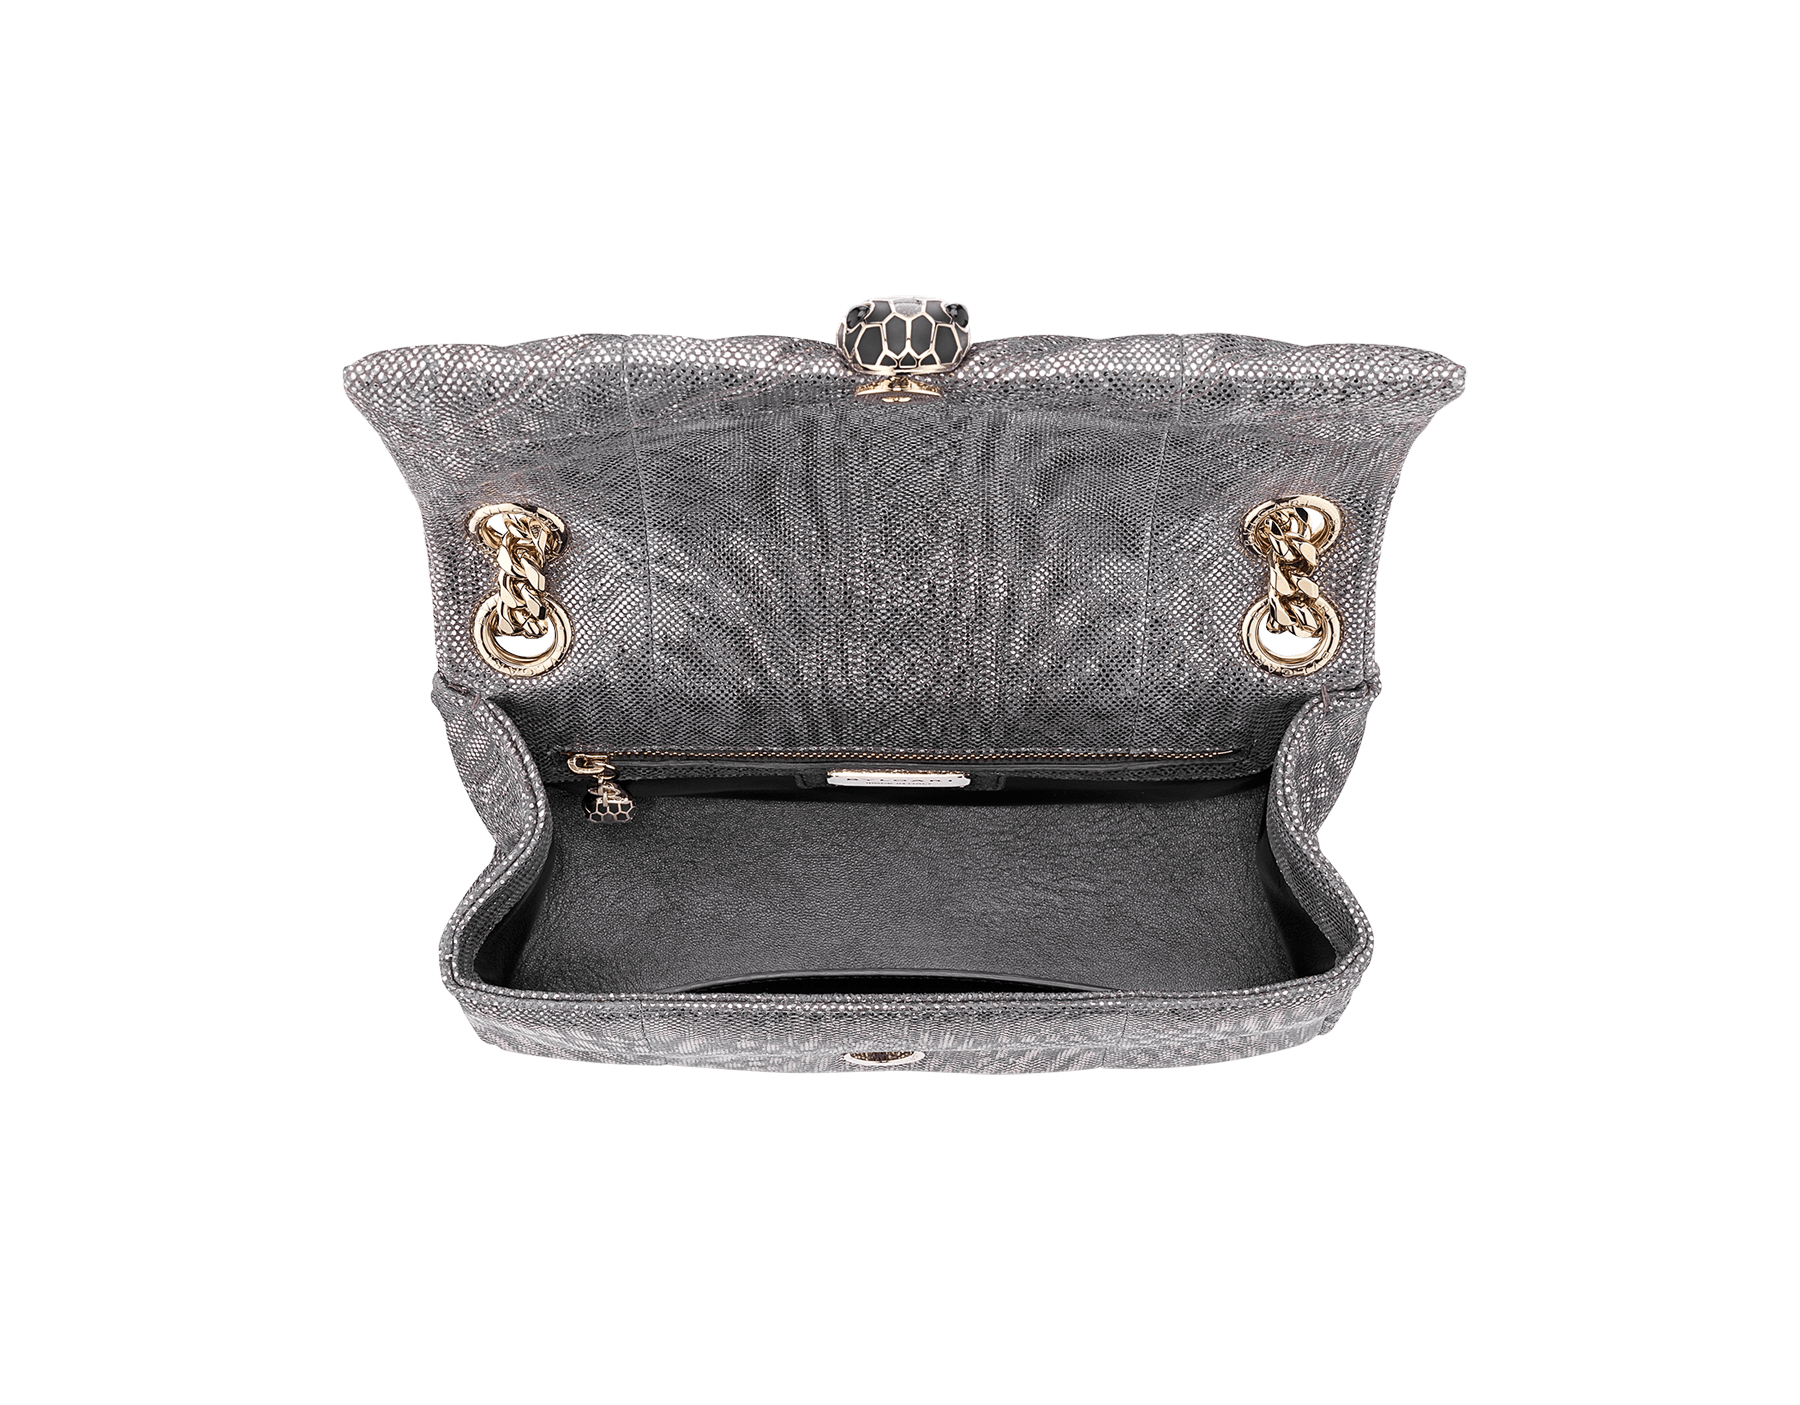 Serpenti Cabochon shoulder bag in soft matelassé charcoal diamond metallic karung skin with graphic motif. Snakehead closure in light gold plated brass decorated with matte black and glitter charcoal diamond enamel, and black onyx eyes. 288617 image 4